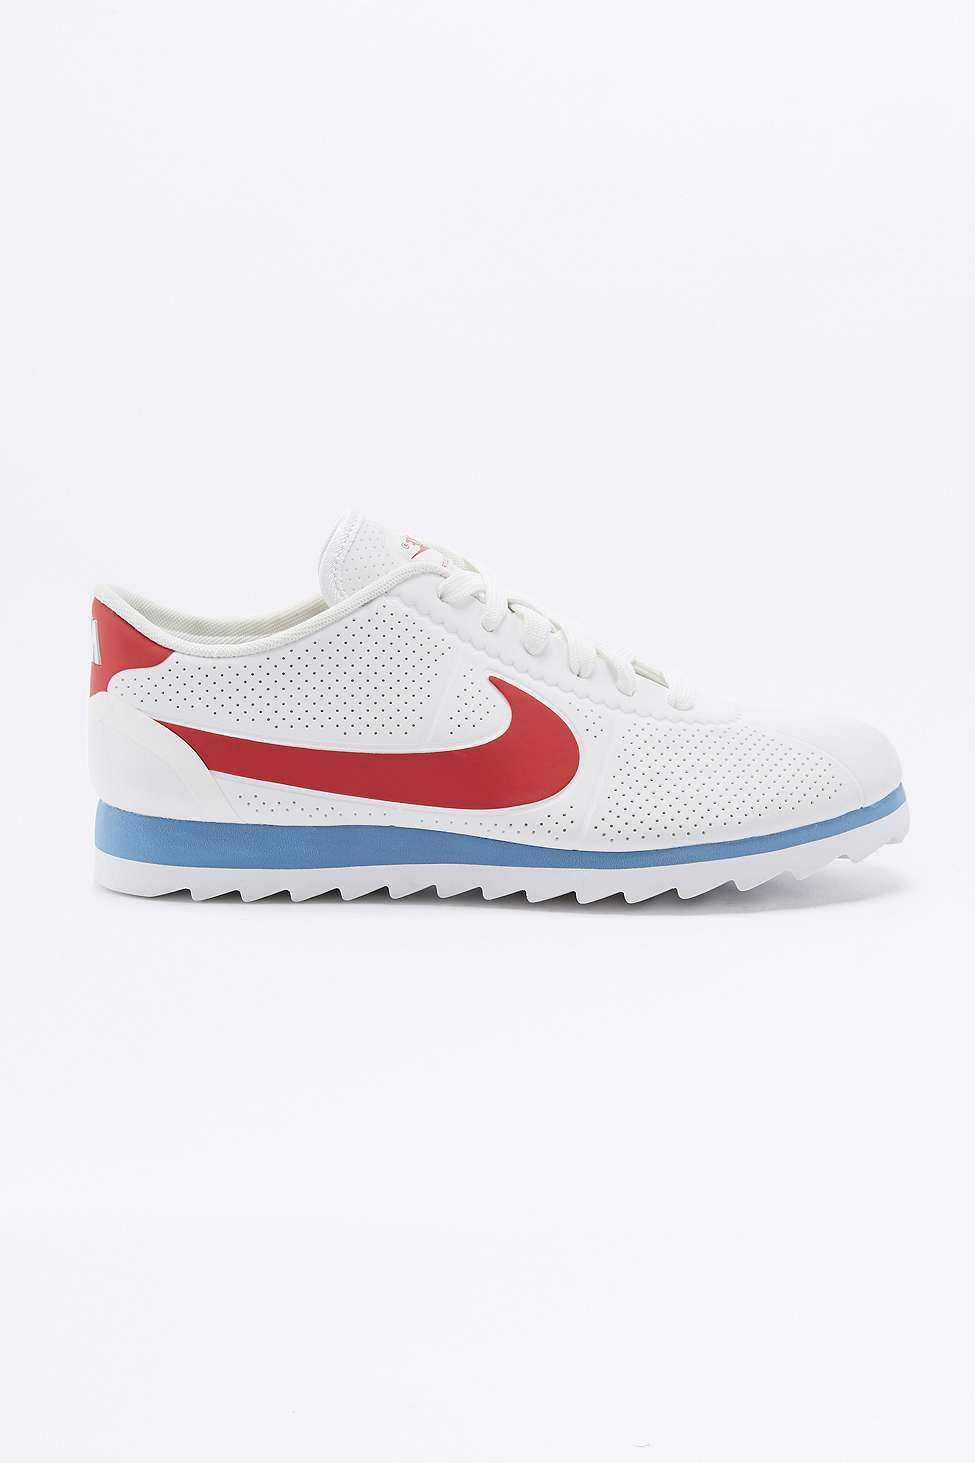 Nike Cortez Ultra Moire Red, White, and